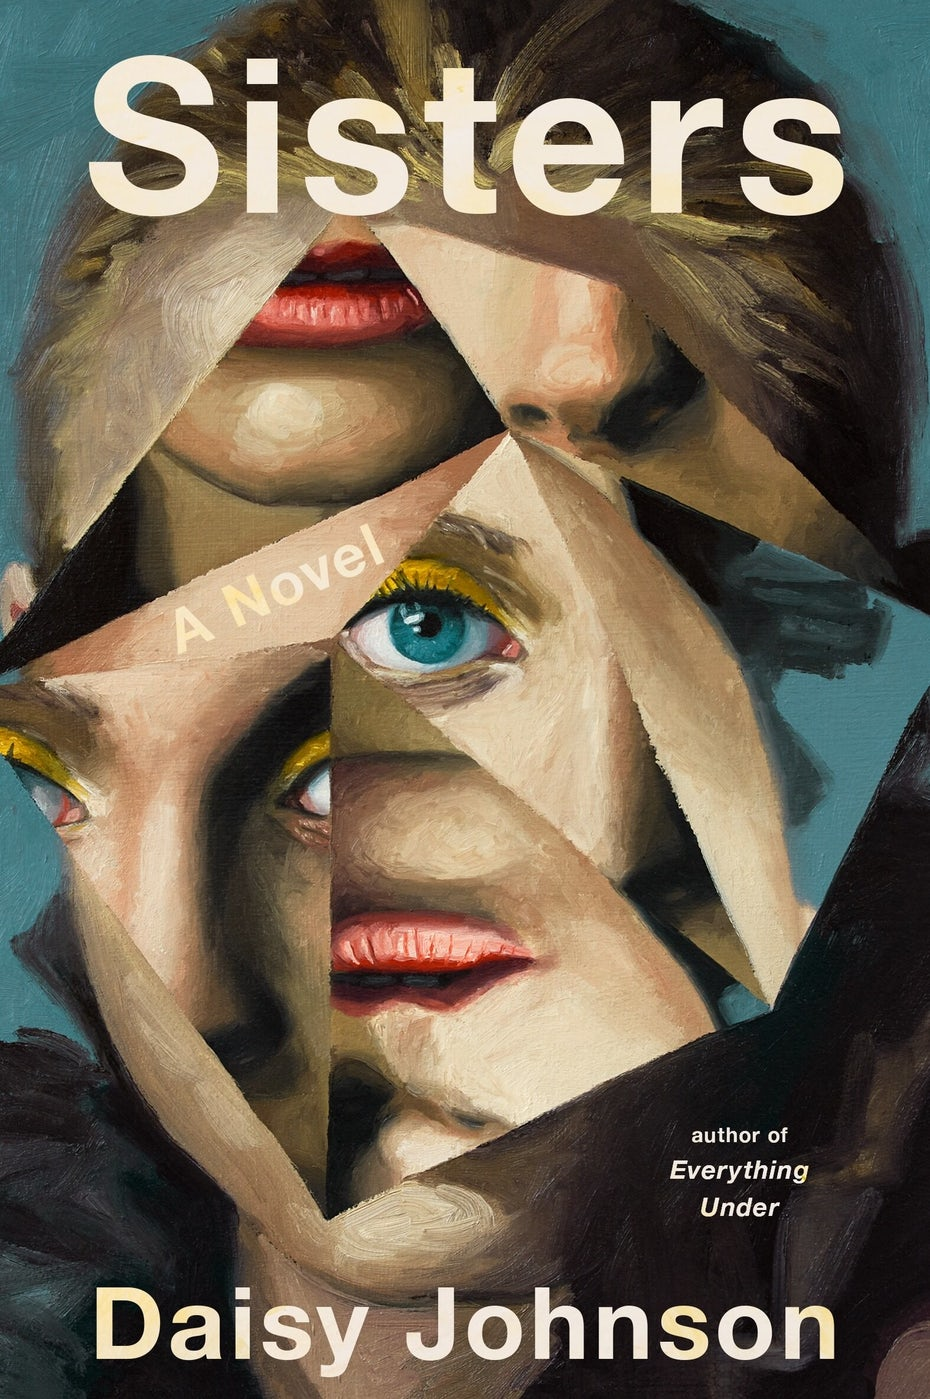 book cover trends example: book cover showing a woman's face in mirror shards